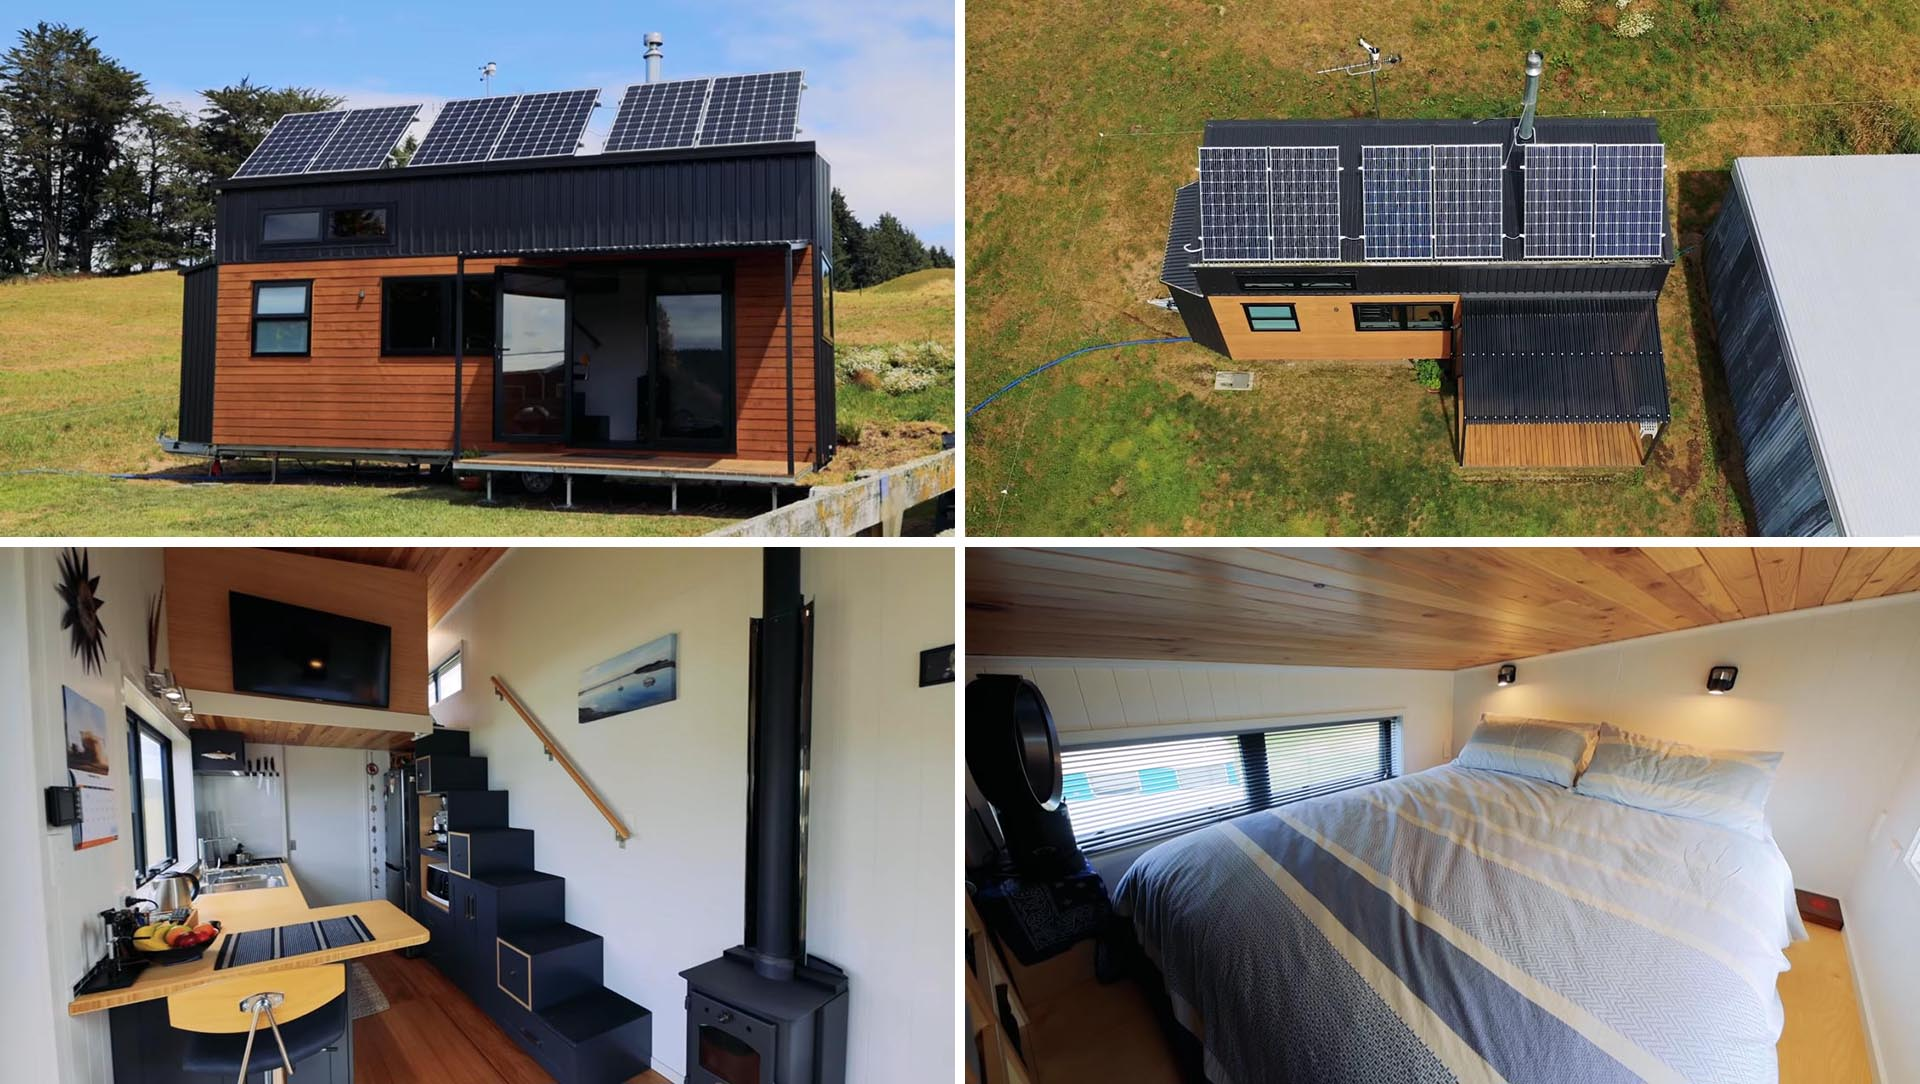 A modern tiny home with solar panels, rainwater collection, and an interior with living room, kitchen, bathroom, and bedroom.